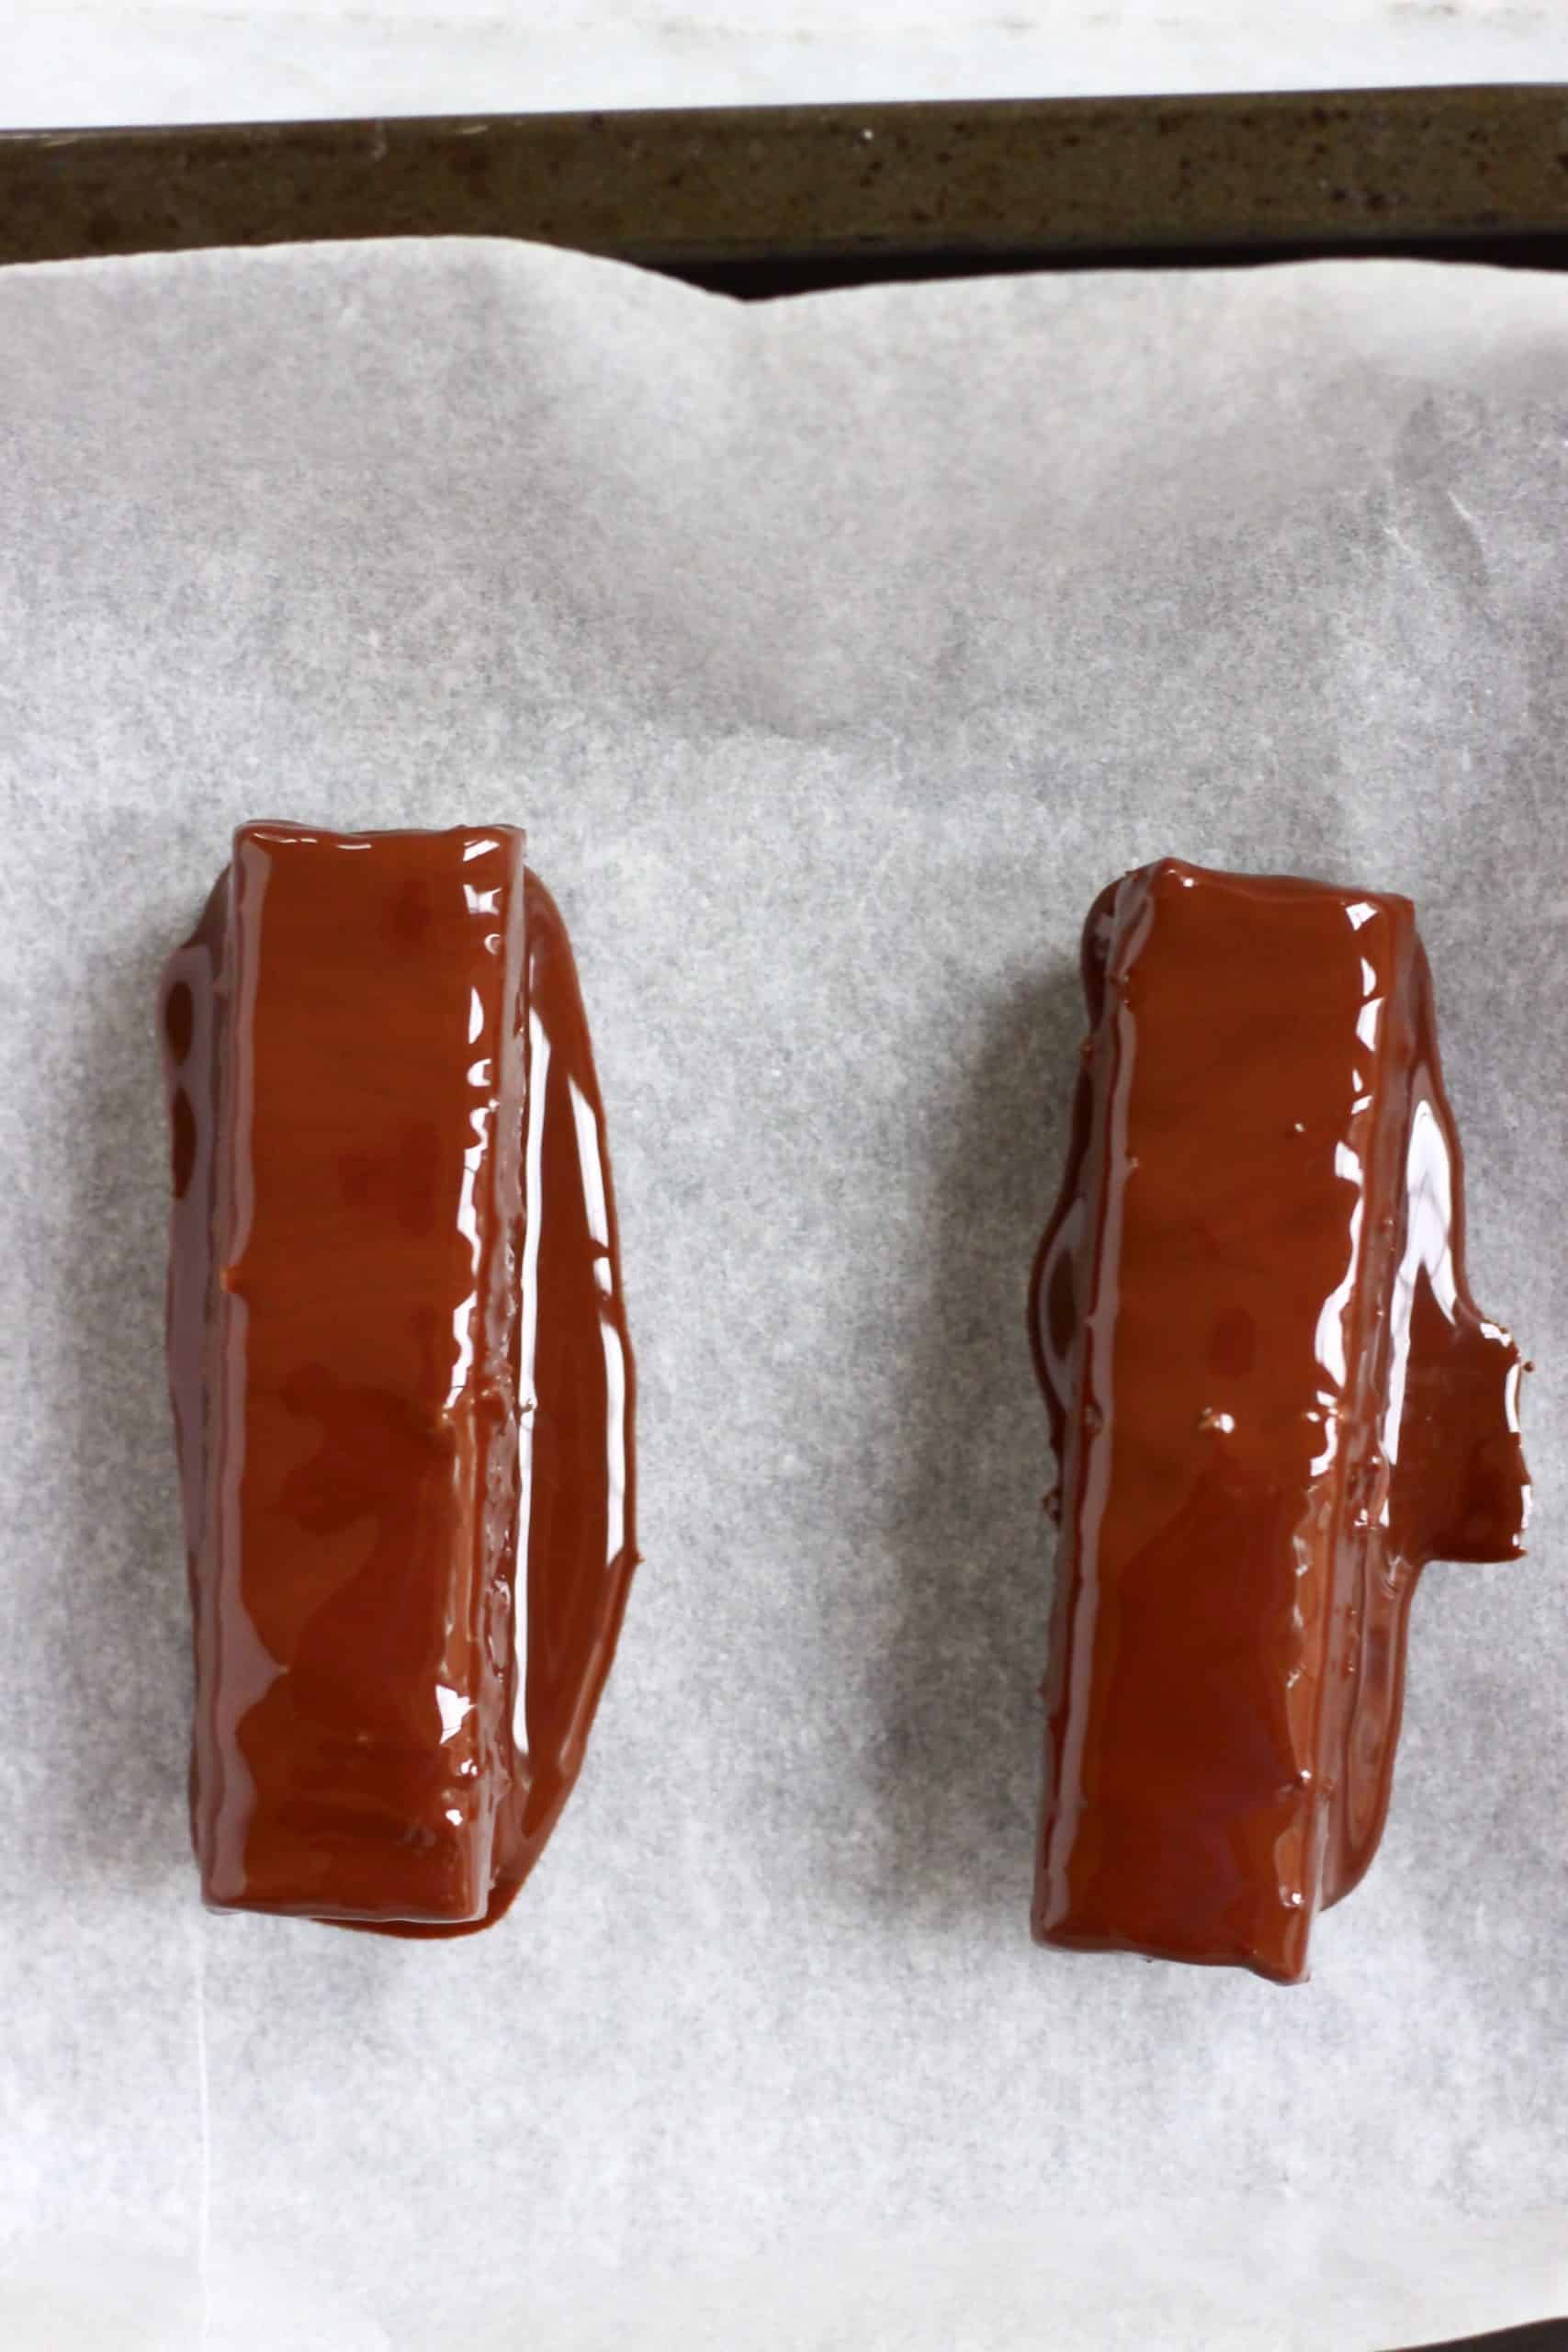 Two vegan twix bars dipped in melted chocolate on a tray lined with baking paper